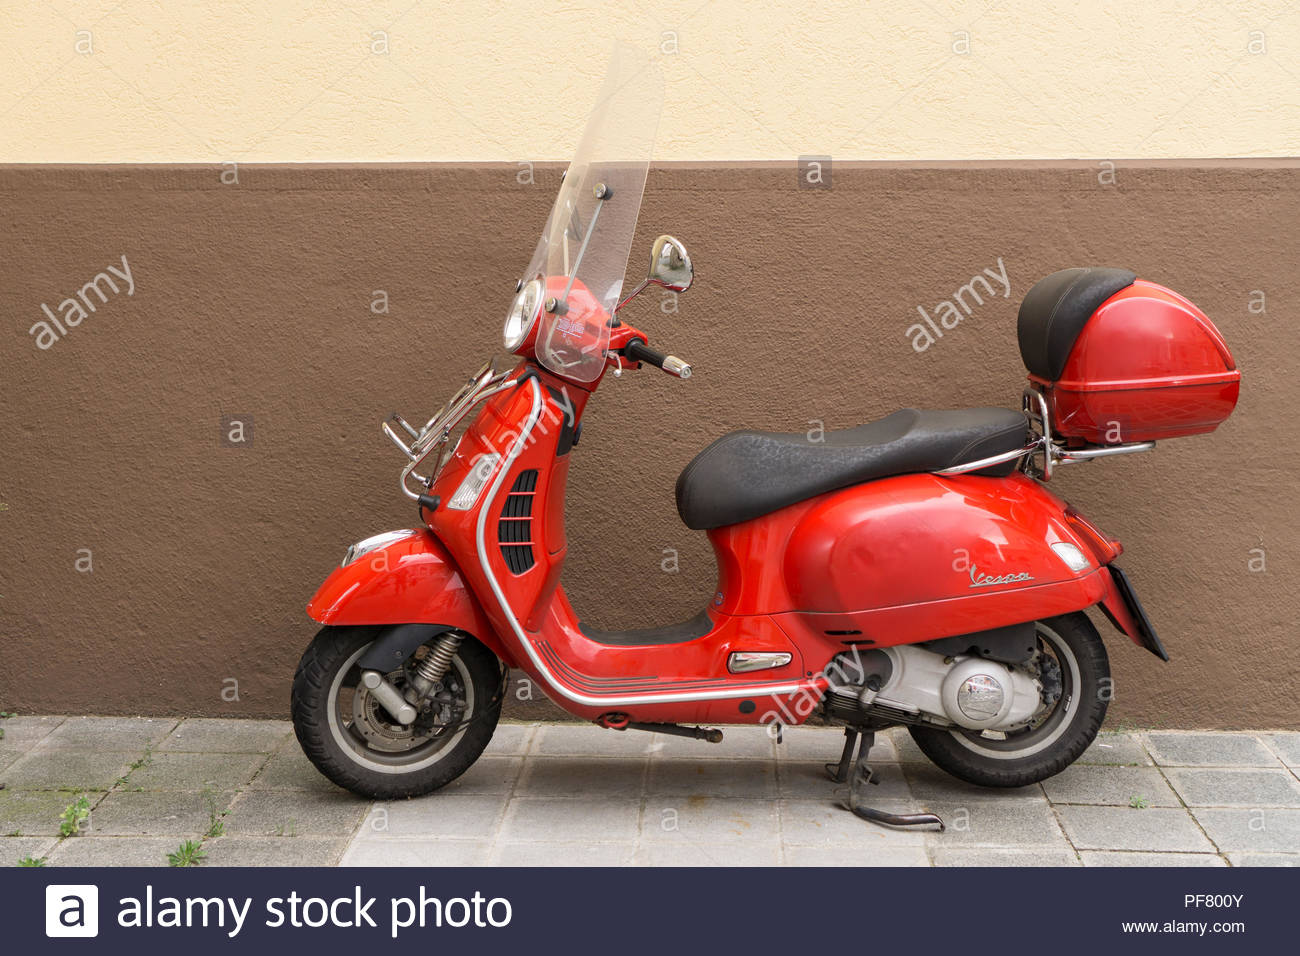 Motor scooter, rote Vespe. - Stock Image